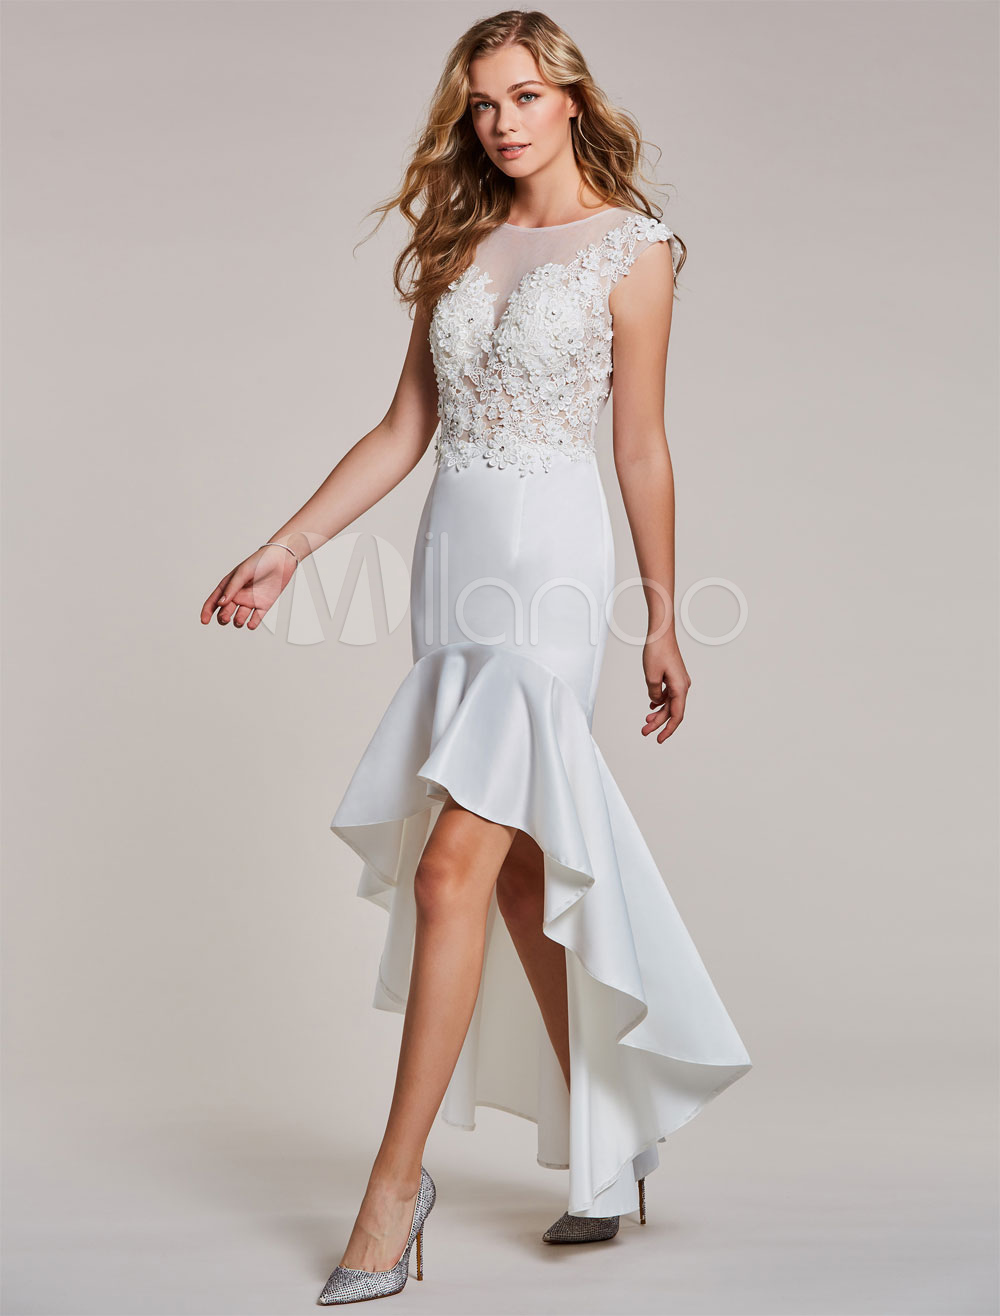 Buy White Cocktail Dresses Mermaid High Low Short Prom Dress Lace Beaded Asymmetrical Party Dresses for $87.99 in Milanoo store